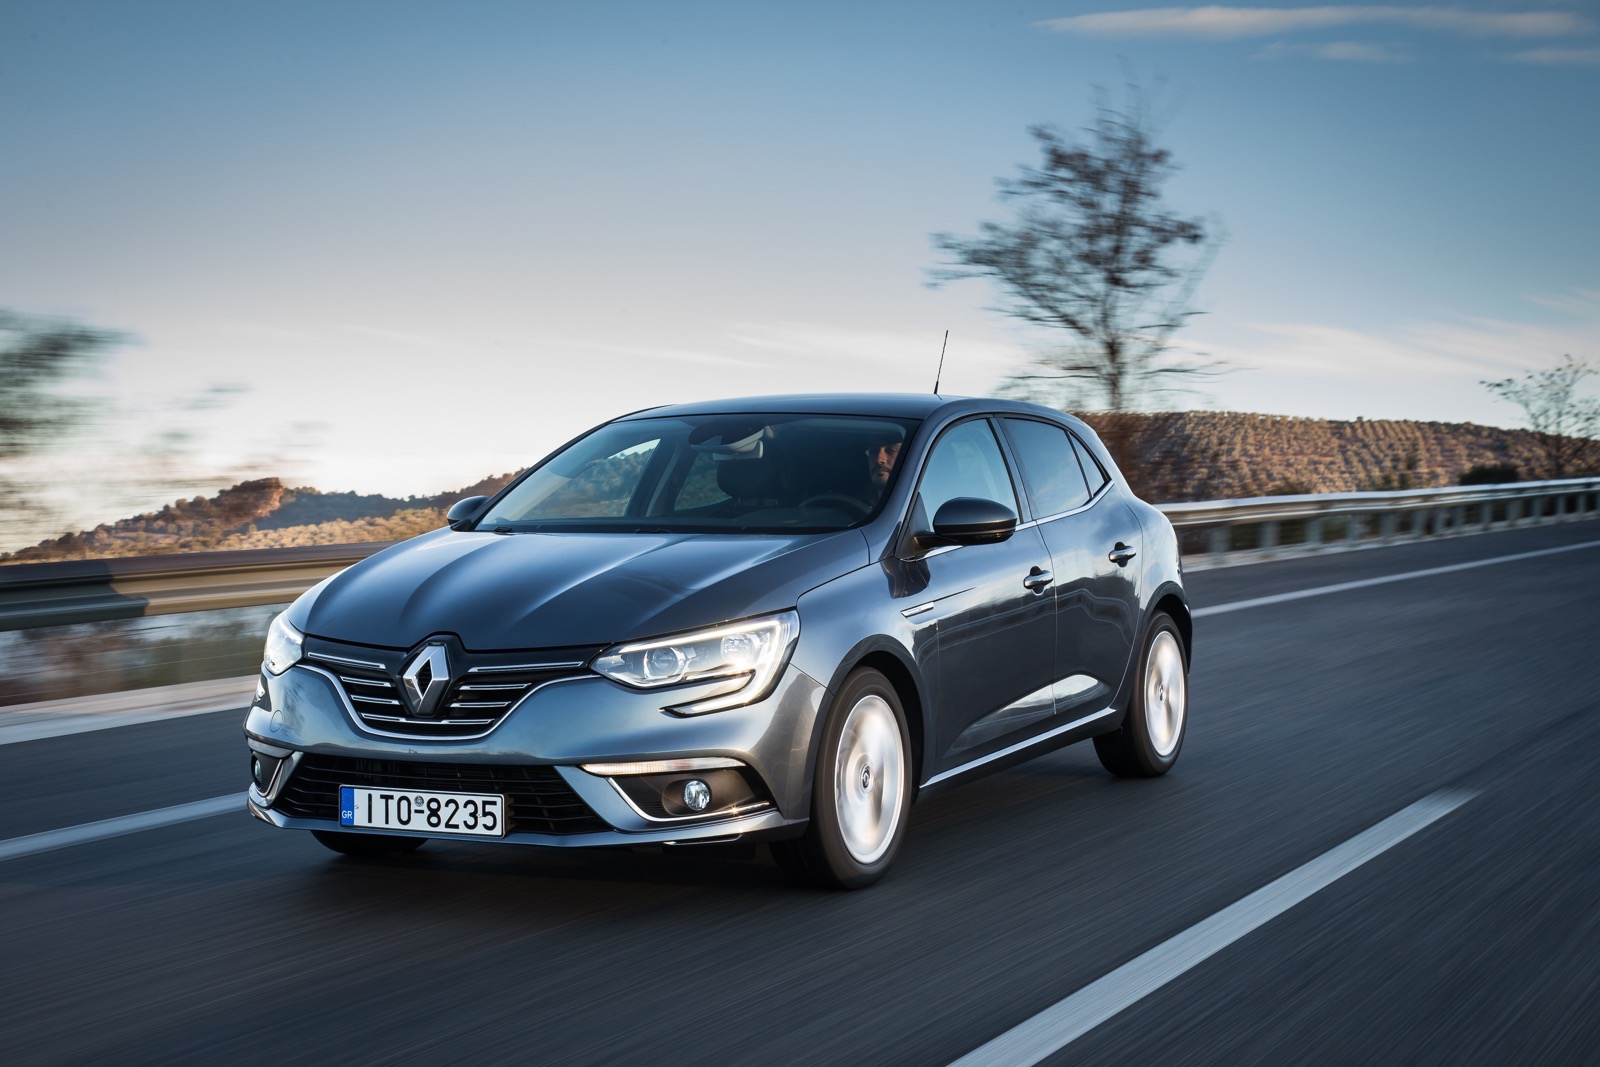 First_Drive_Renault_Megane_59